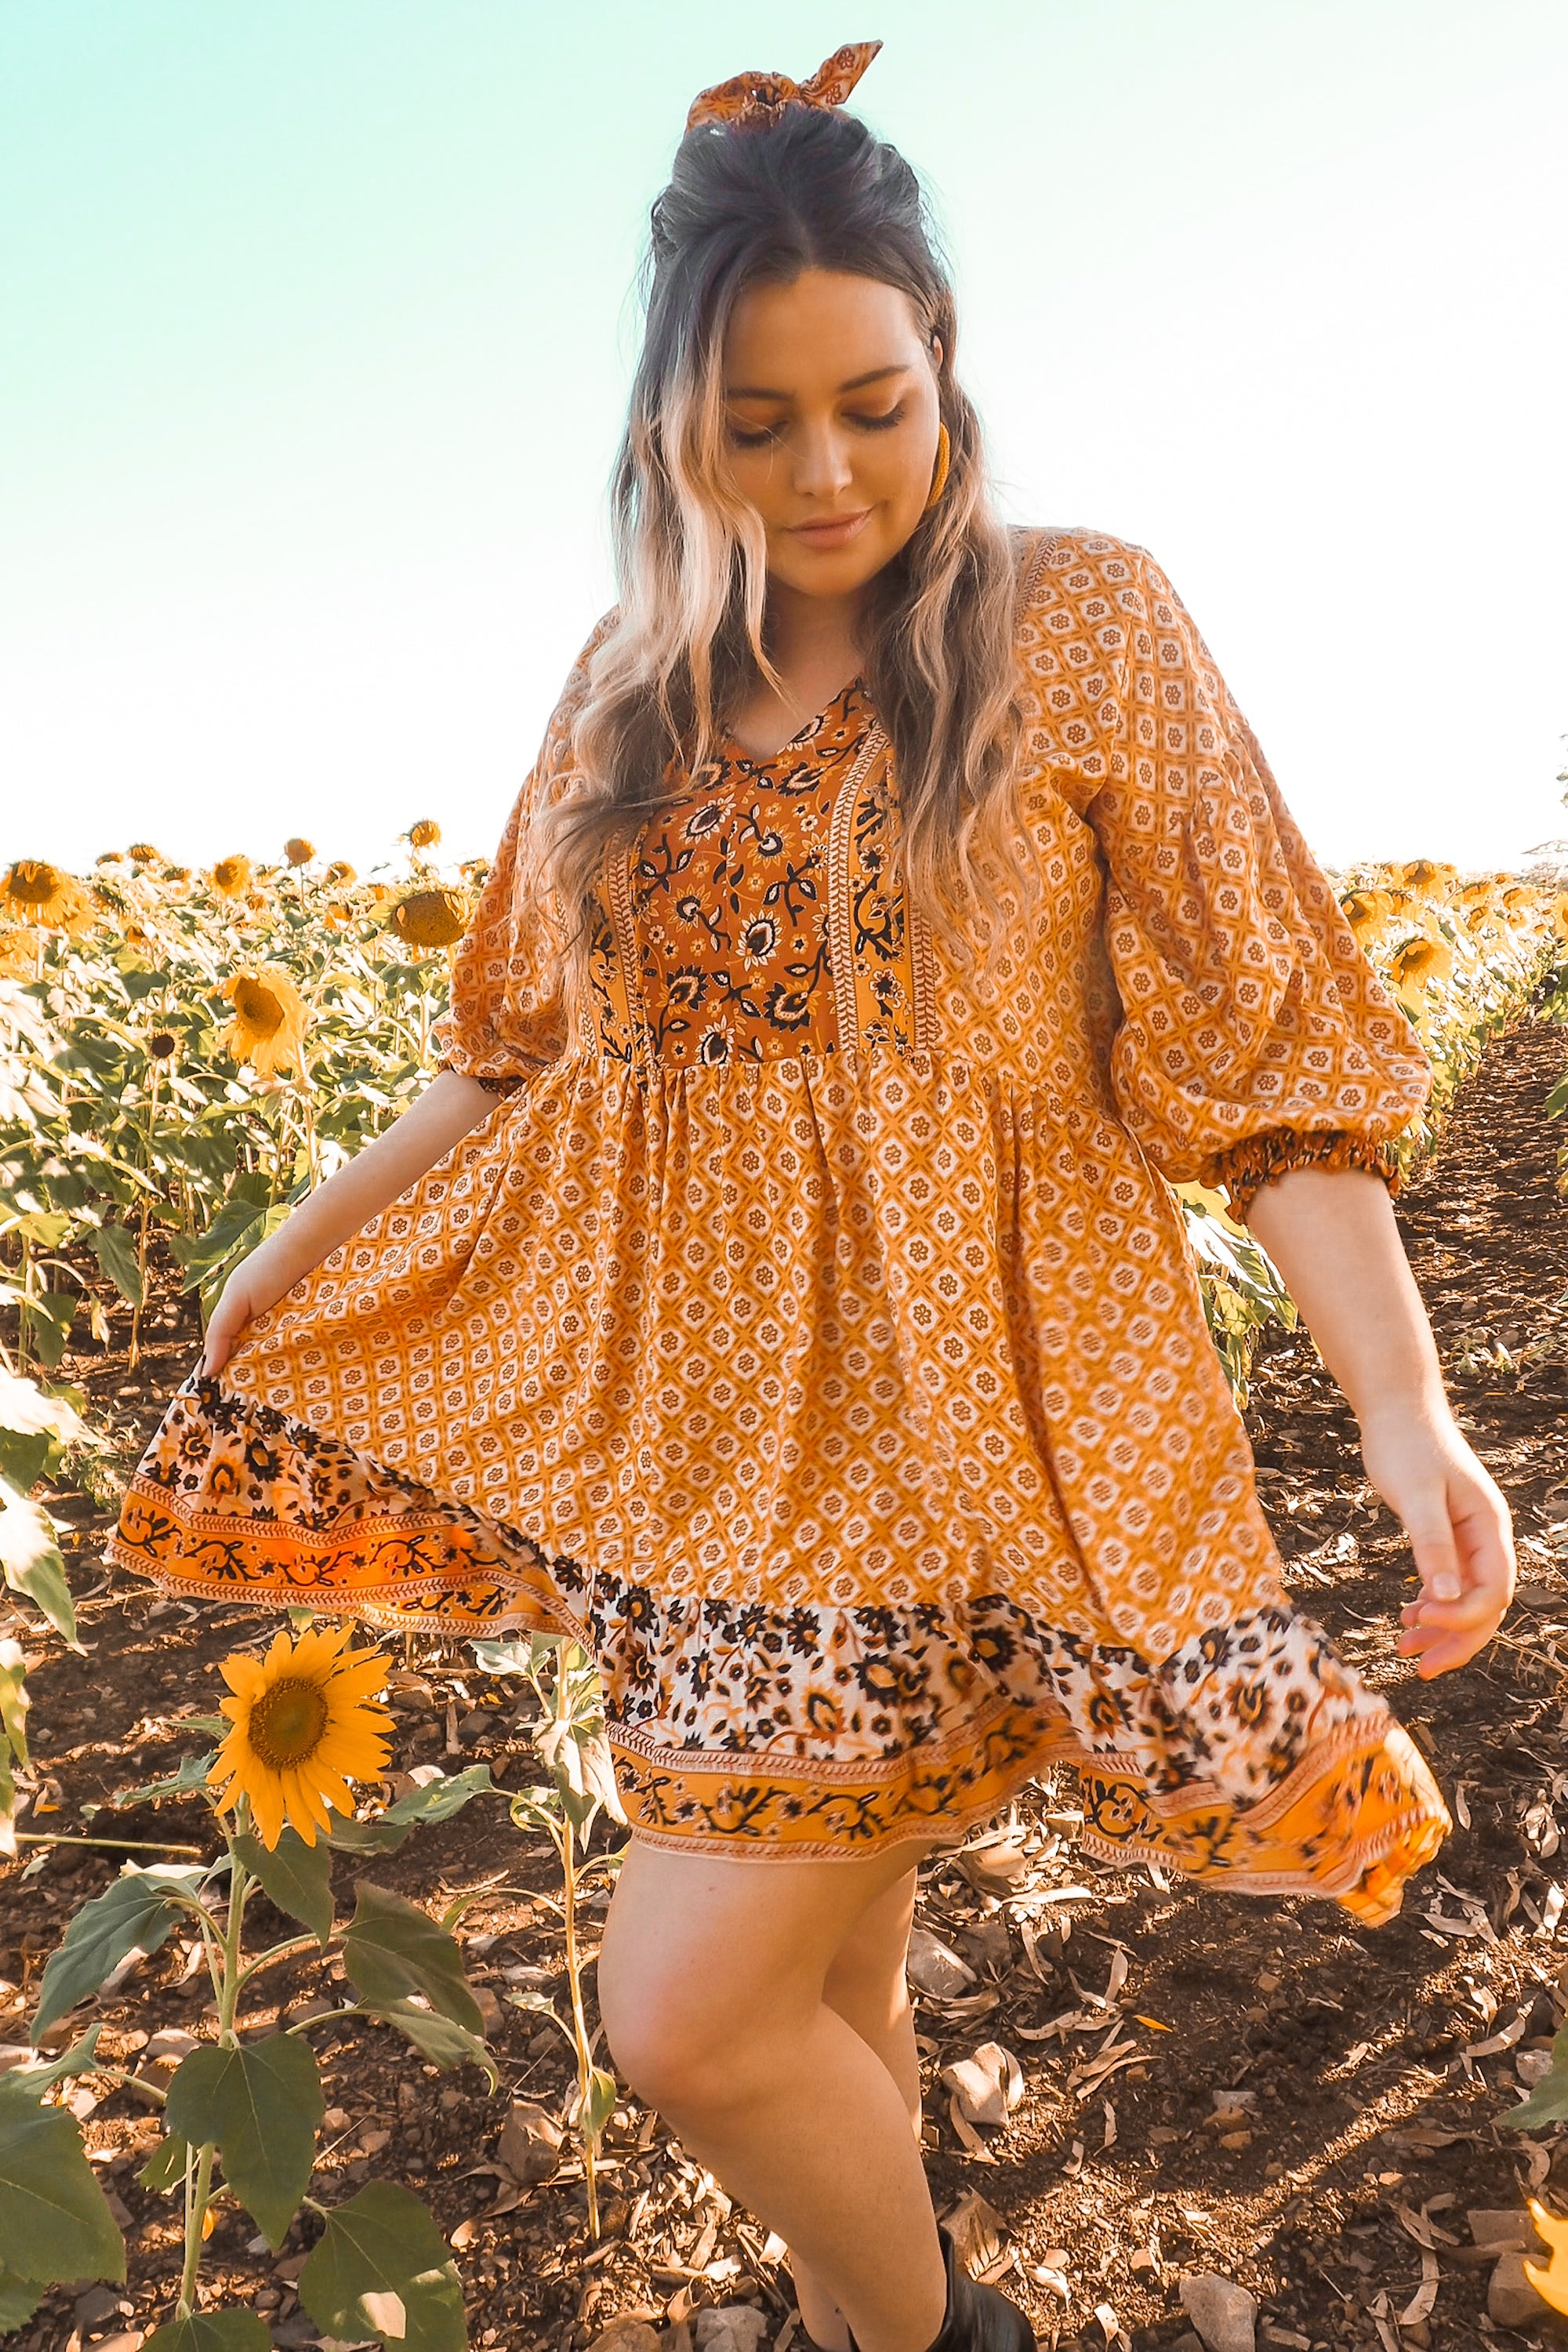 Juliette Billow Sleeve Dress Short 🌻 Winter Sun - Summer Dress